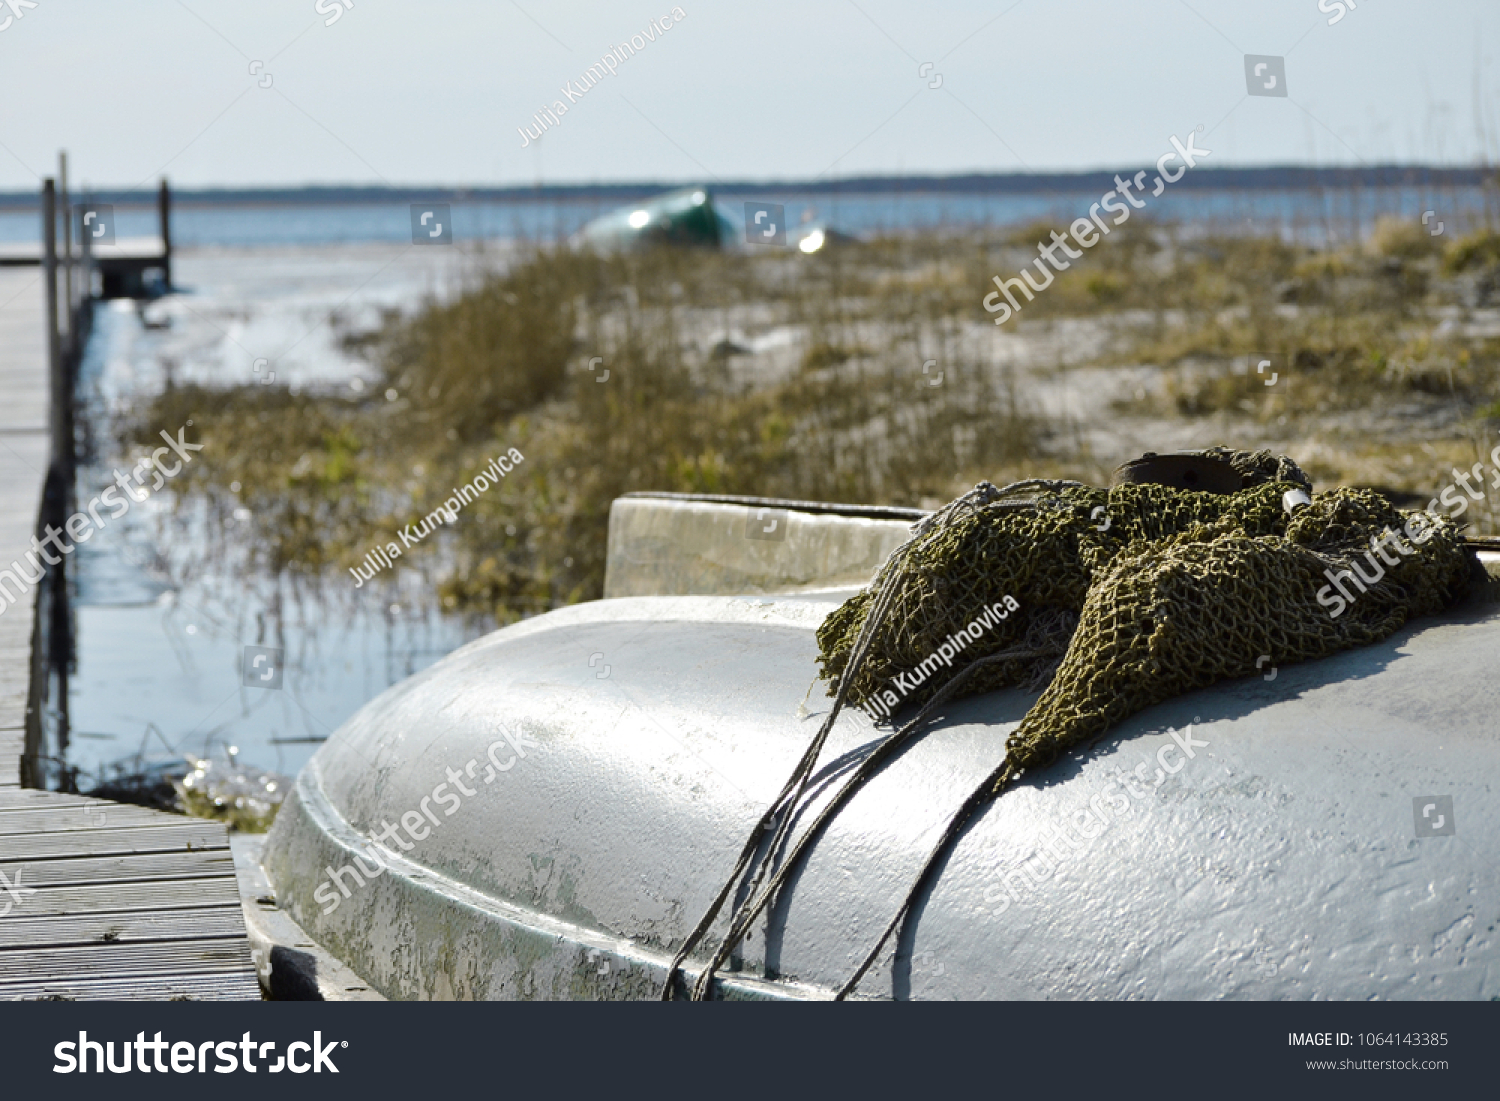 Fisherman boat with fishing net on the lake shore out of season at the early spring.